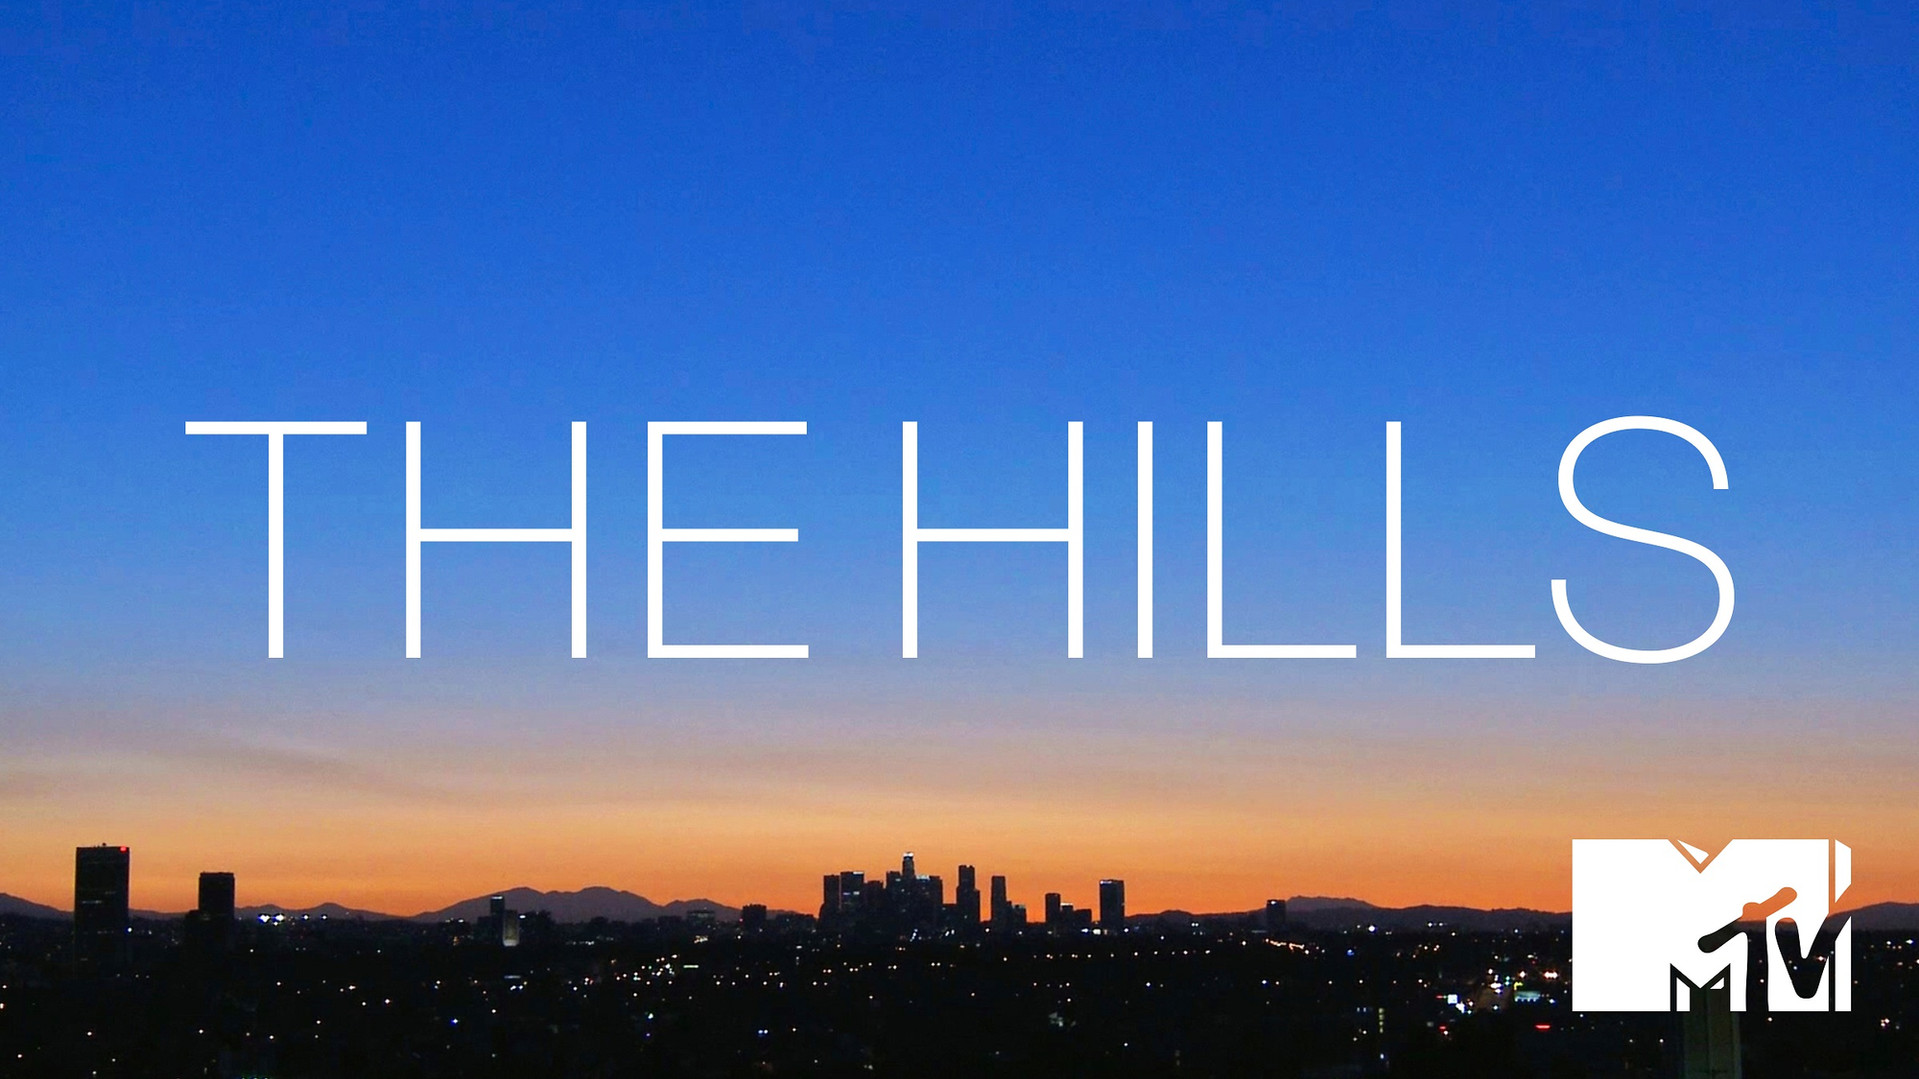 MTV The Hills DE featuredImage.jpg